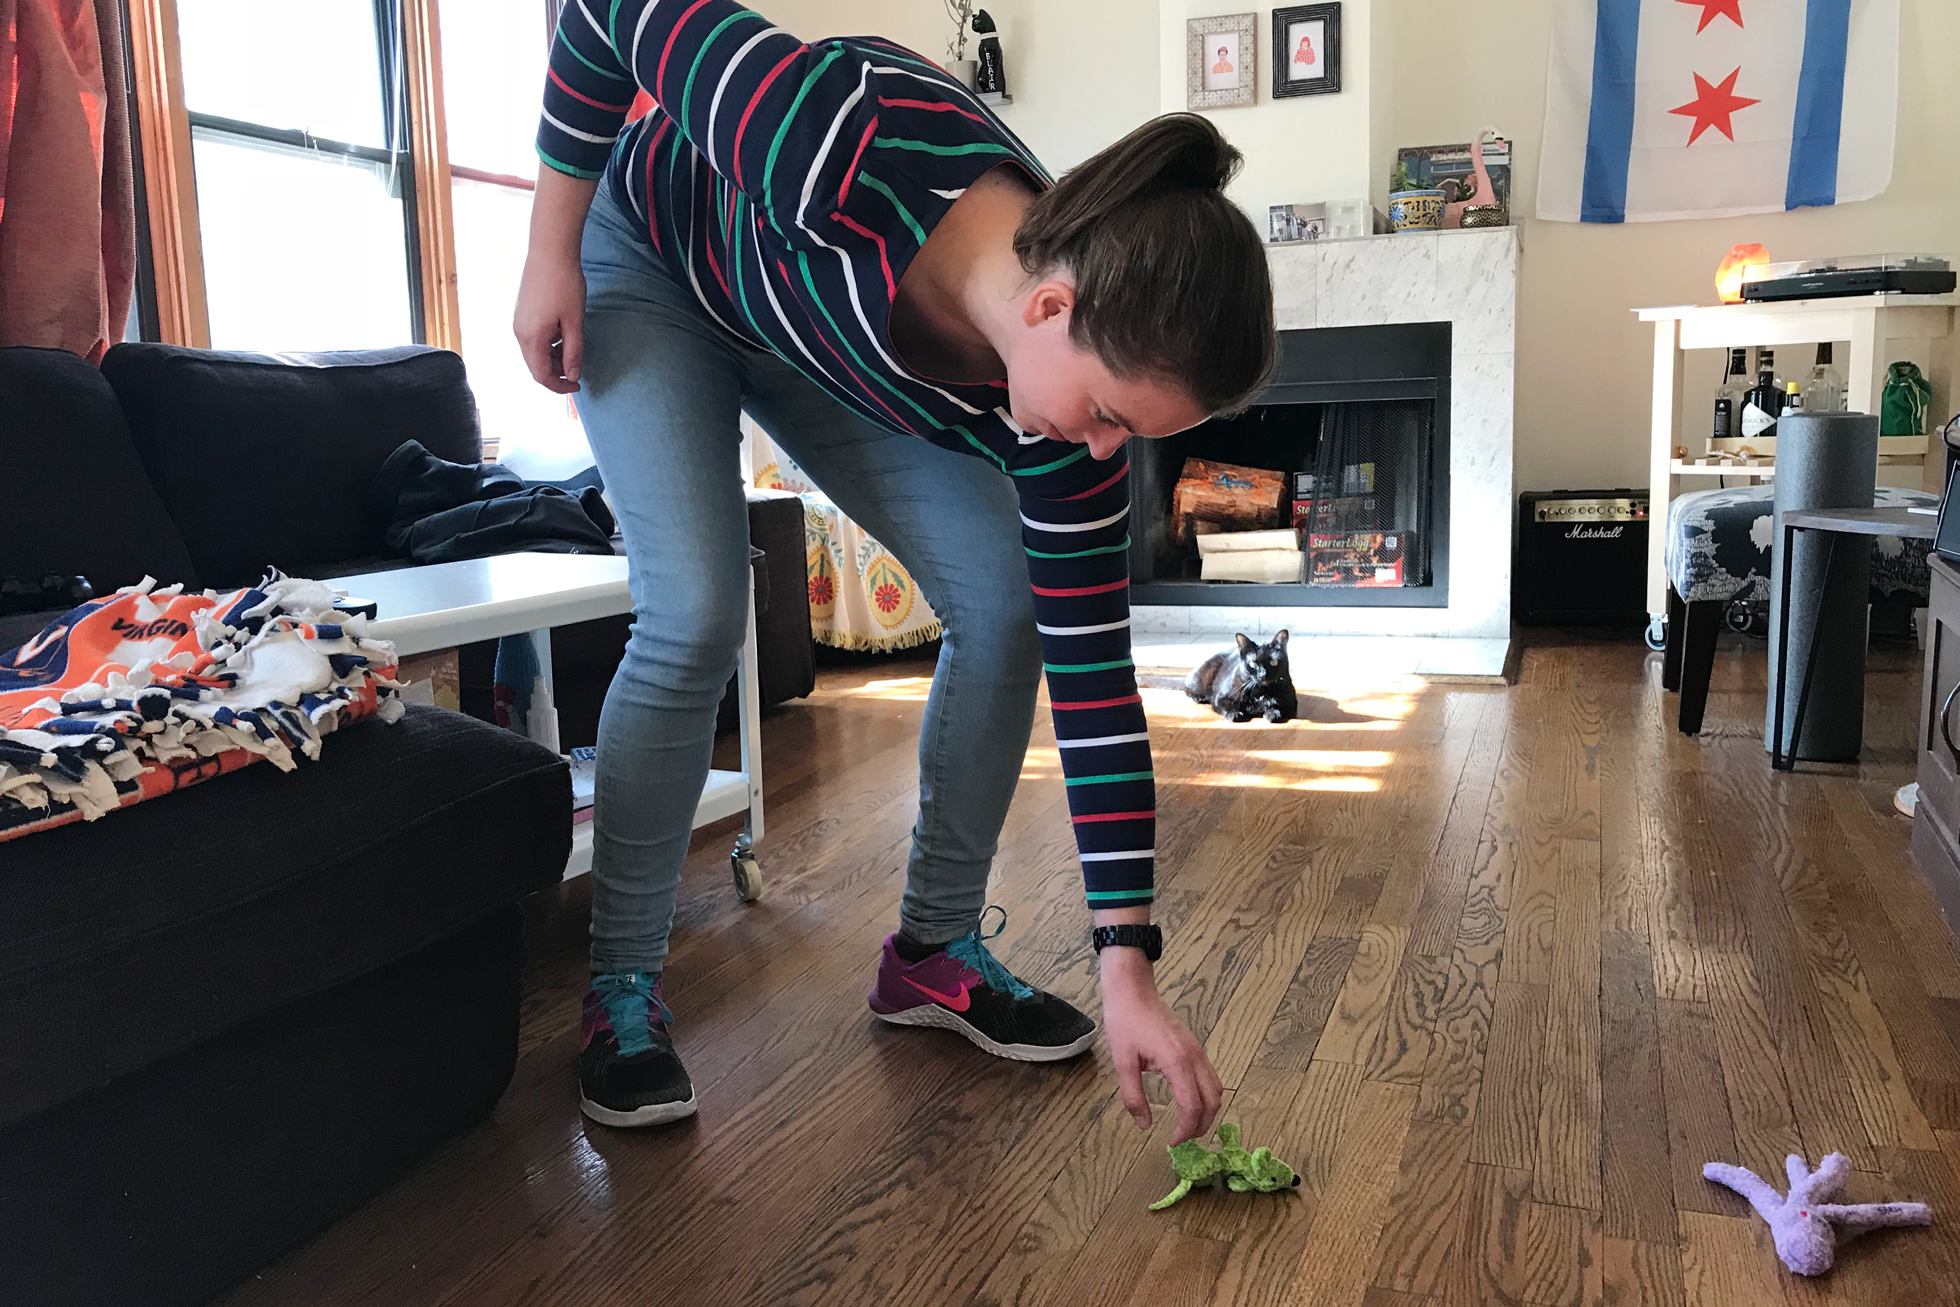 A woman picking up a green cat toy off the wood floor